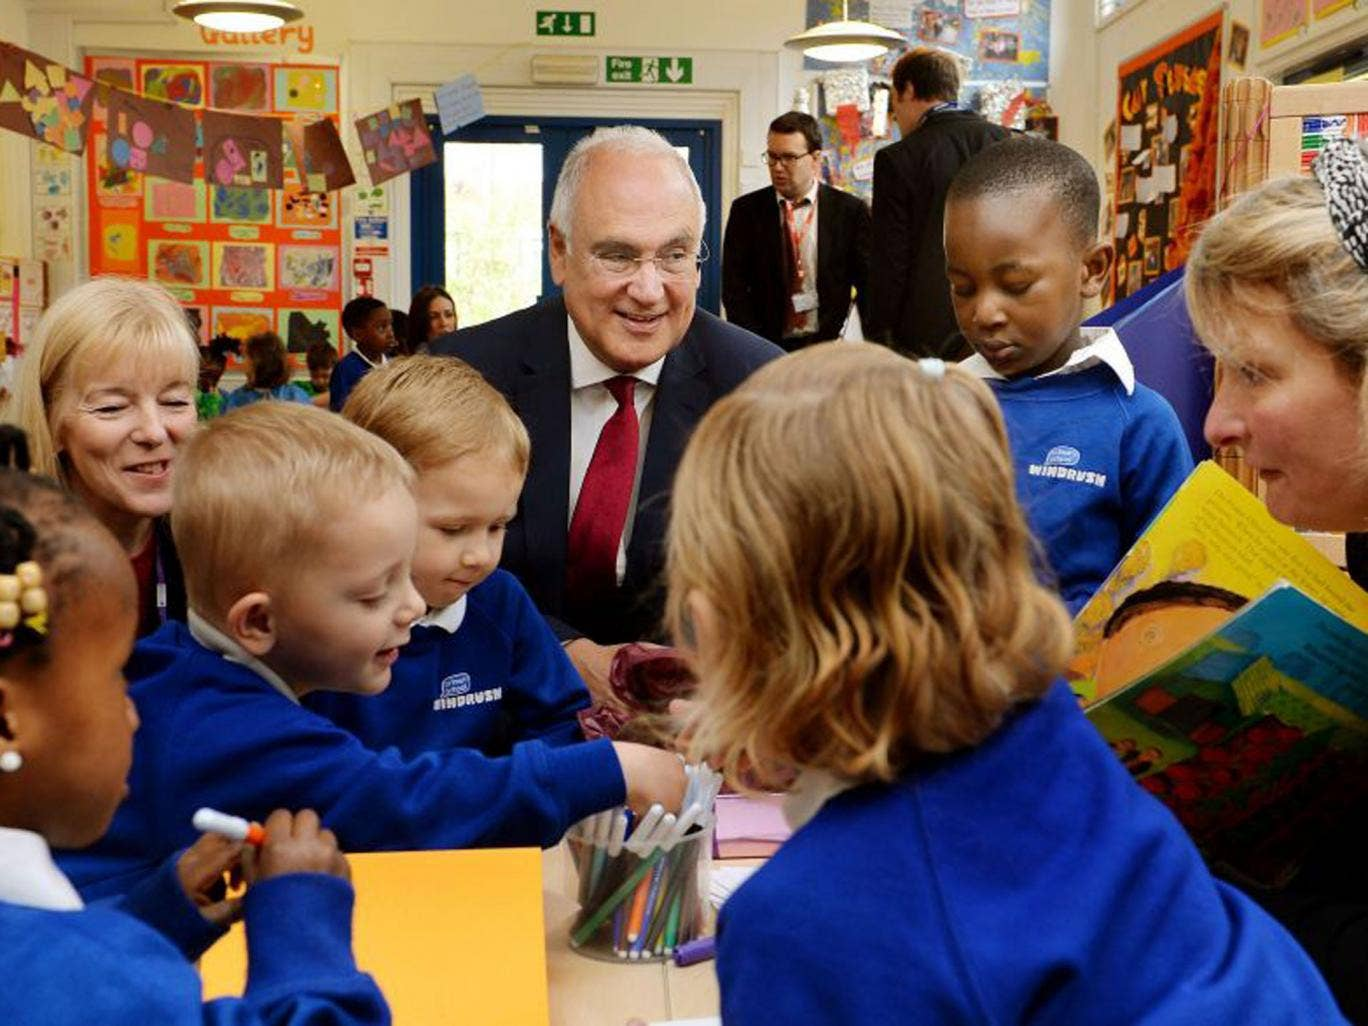 Chief schools inspector Sir Michael Wilshaw, centre, has said he is reviewing the role of private contractors in carrying out school inspections